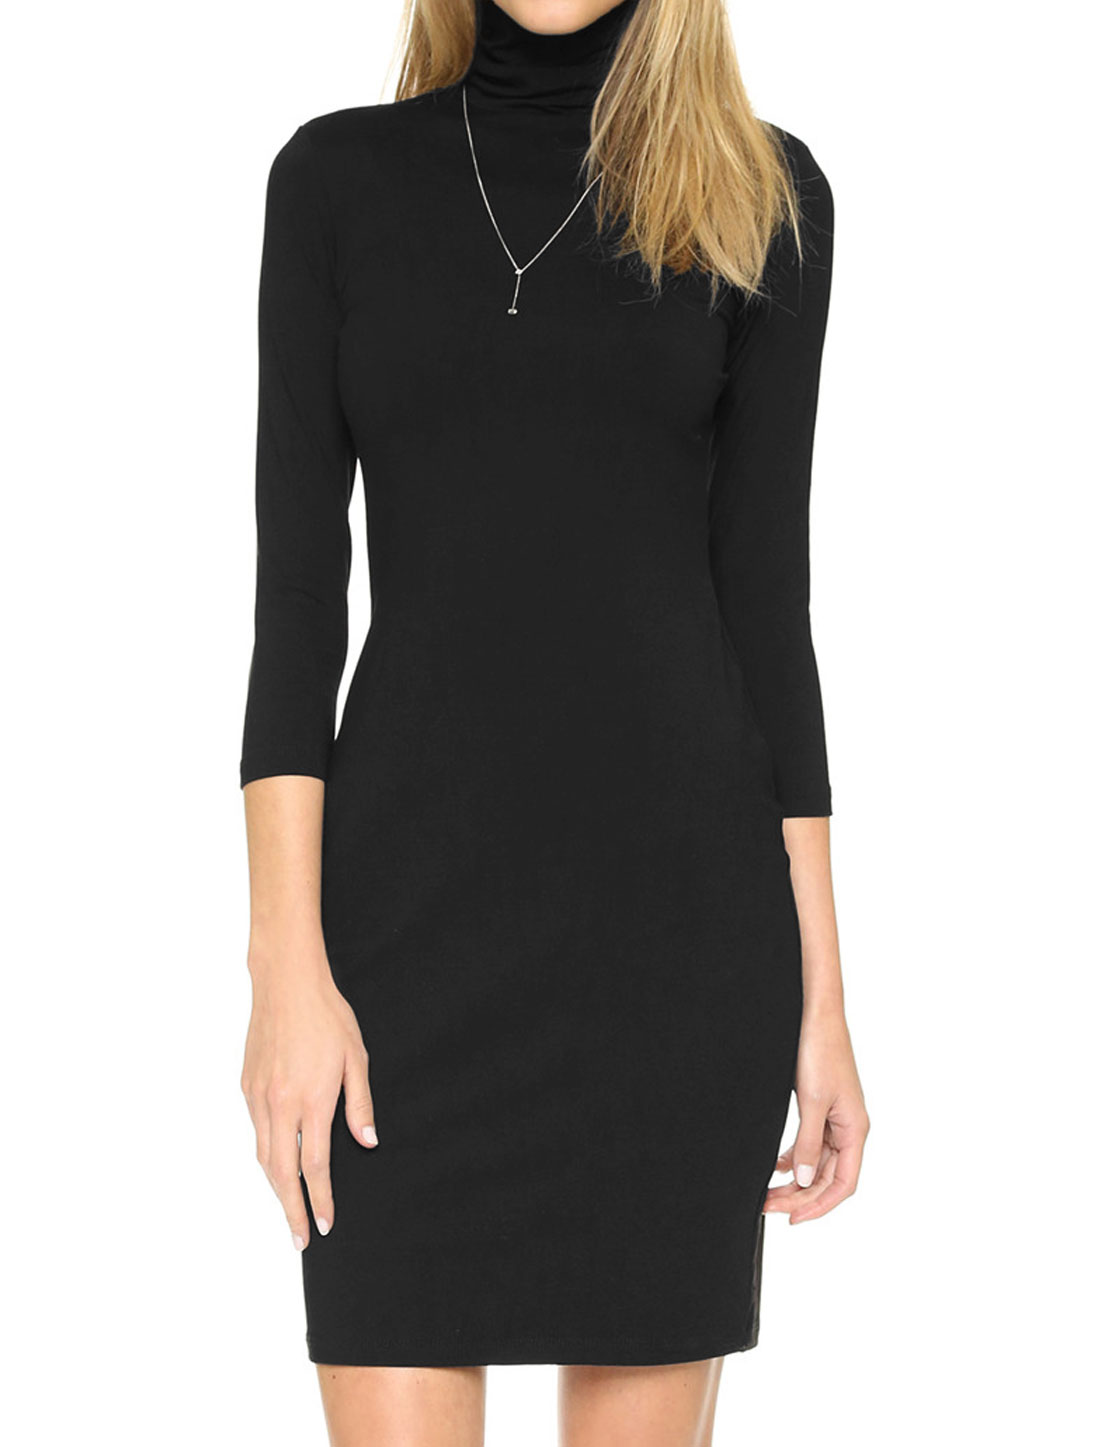 Lady Turtle Neck 3/4 Sleeves Casual Wiggle Dress Black M